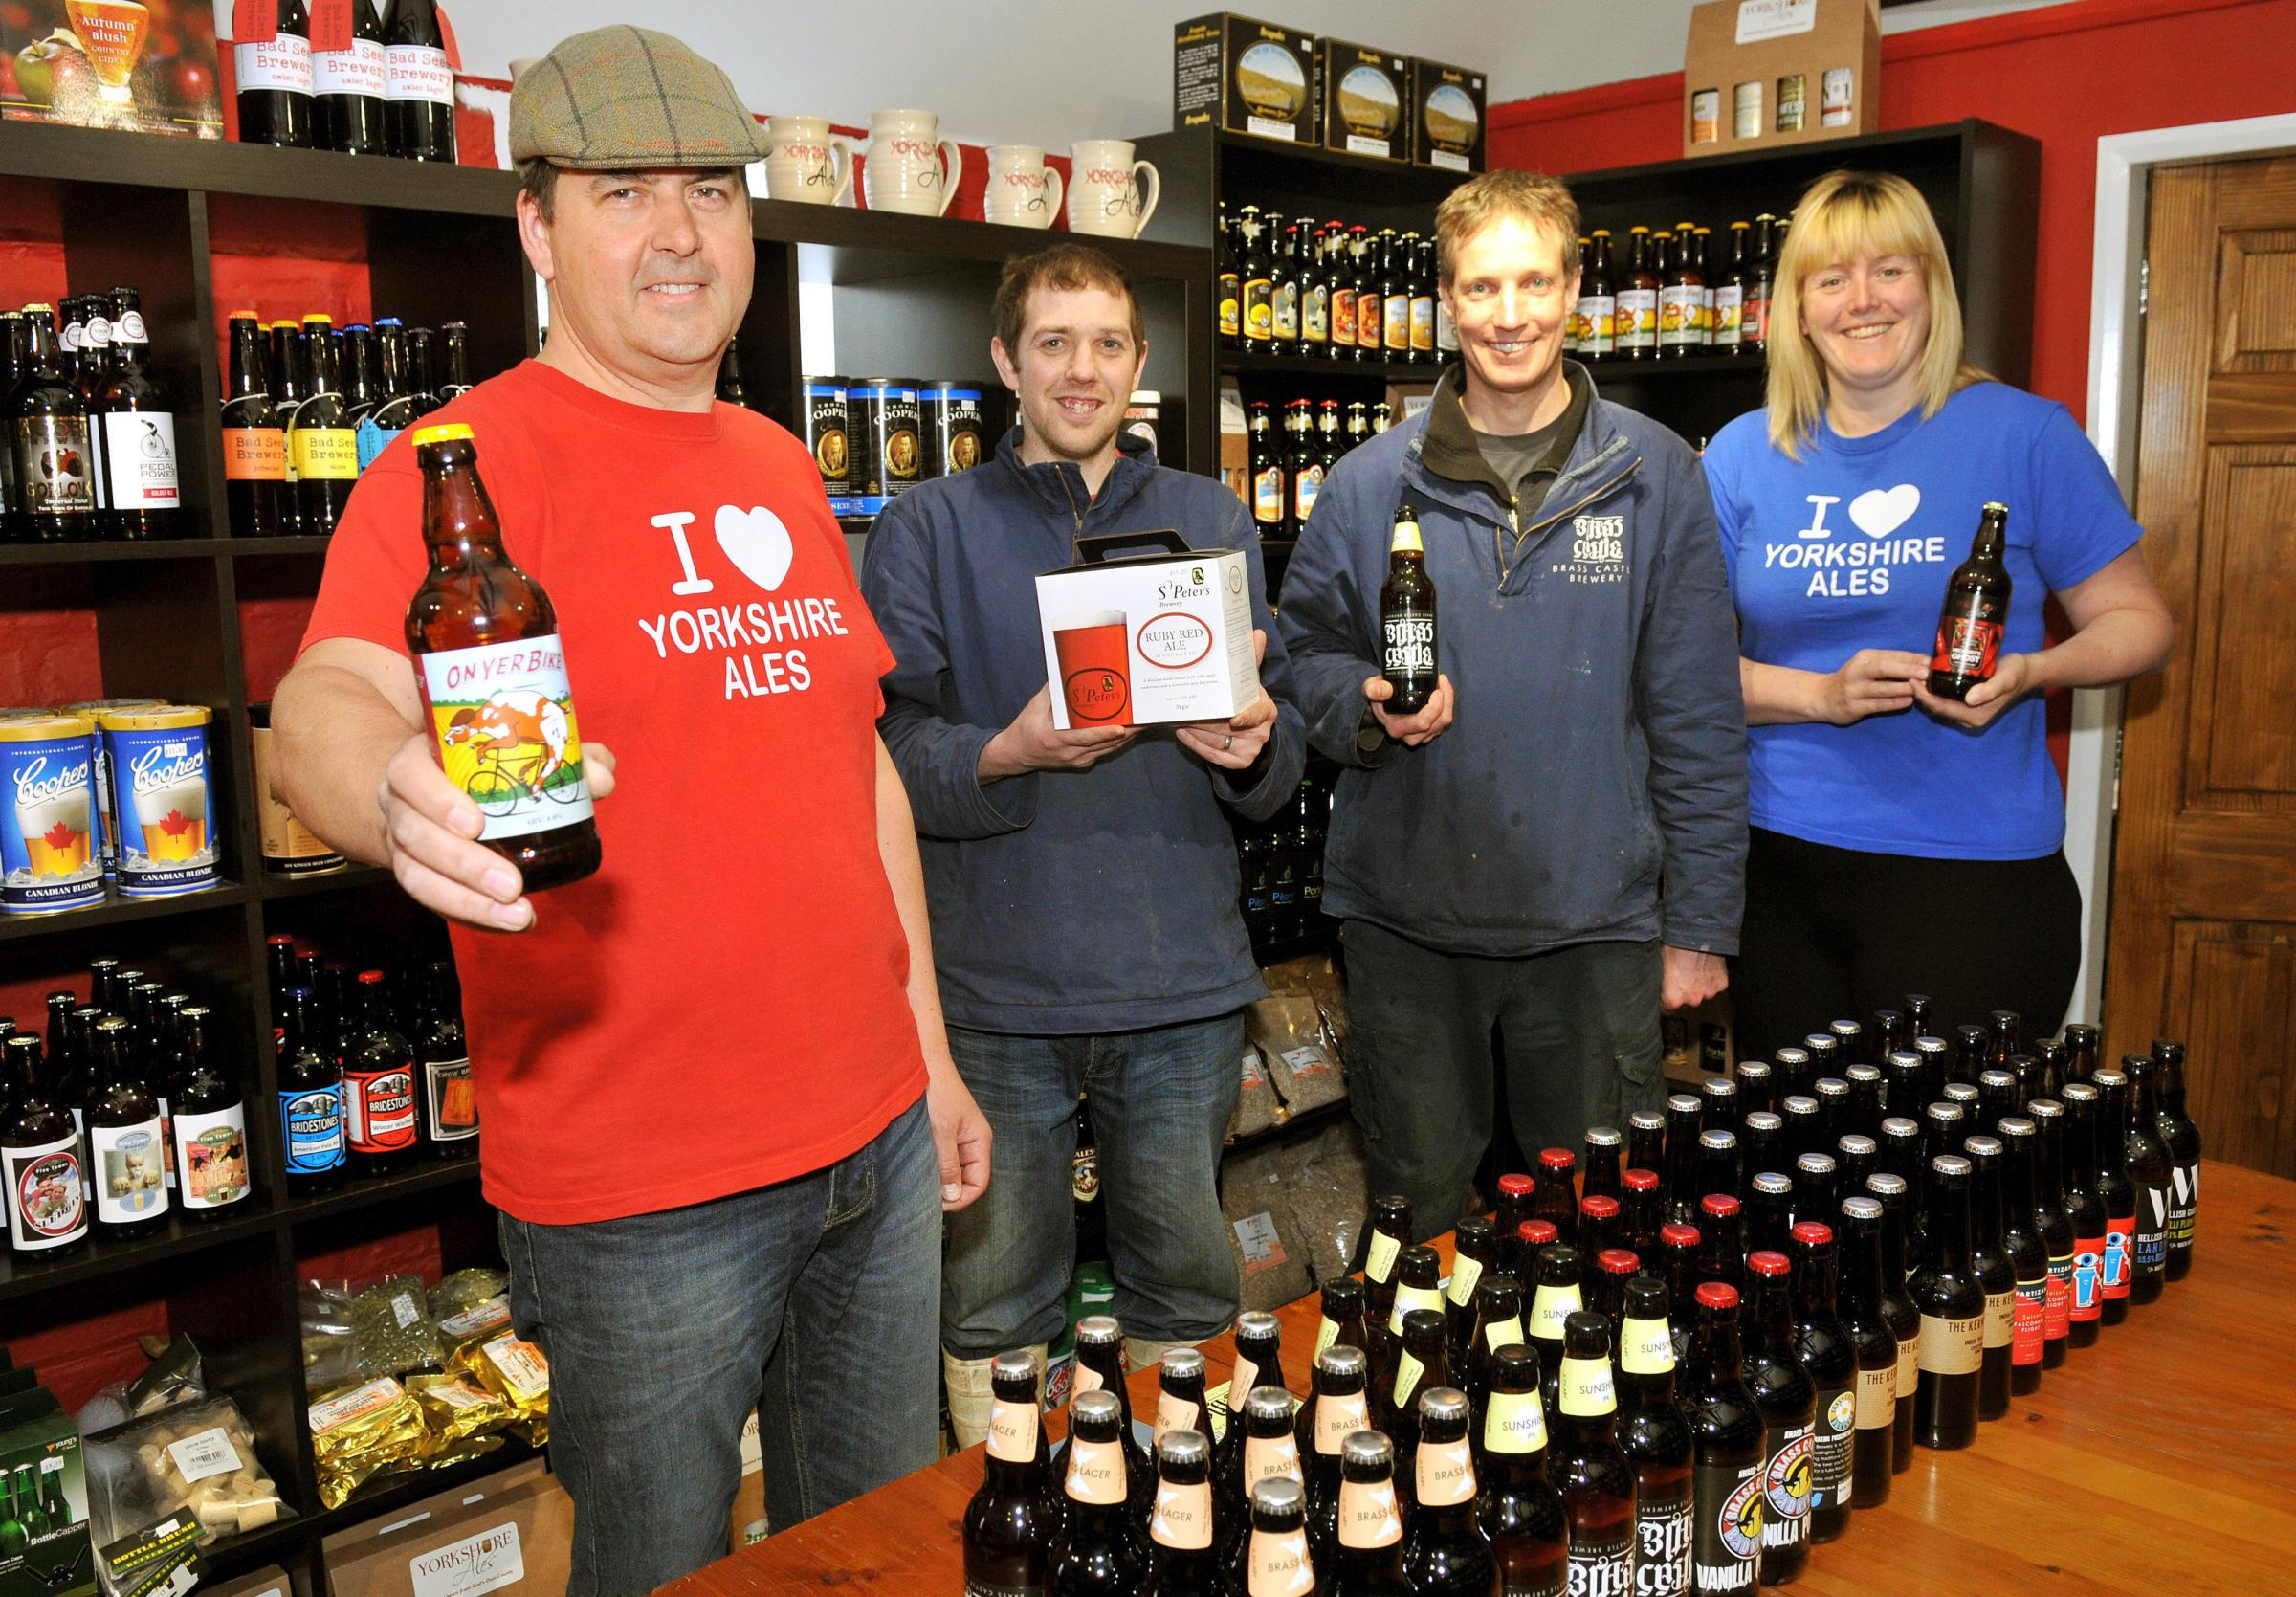 Matthew Hall and Phil Saltonstall at the opening of the Yorkshire Ales shop at Brass Castle Brewery Malton, watched by Adrian Pettitt, left, and his wife, Vicky